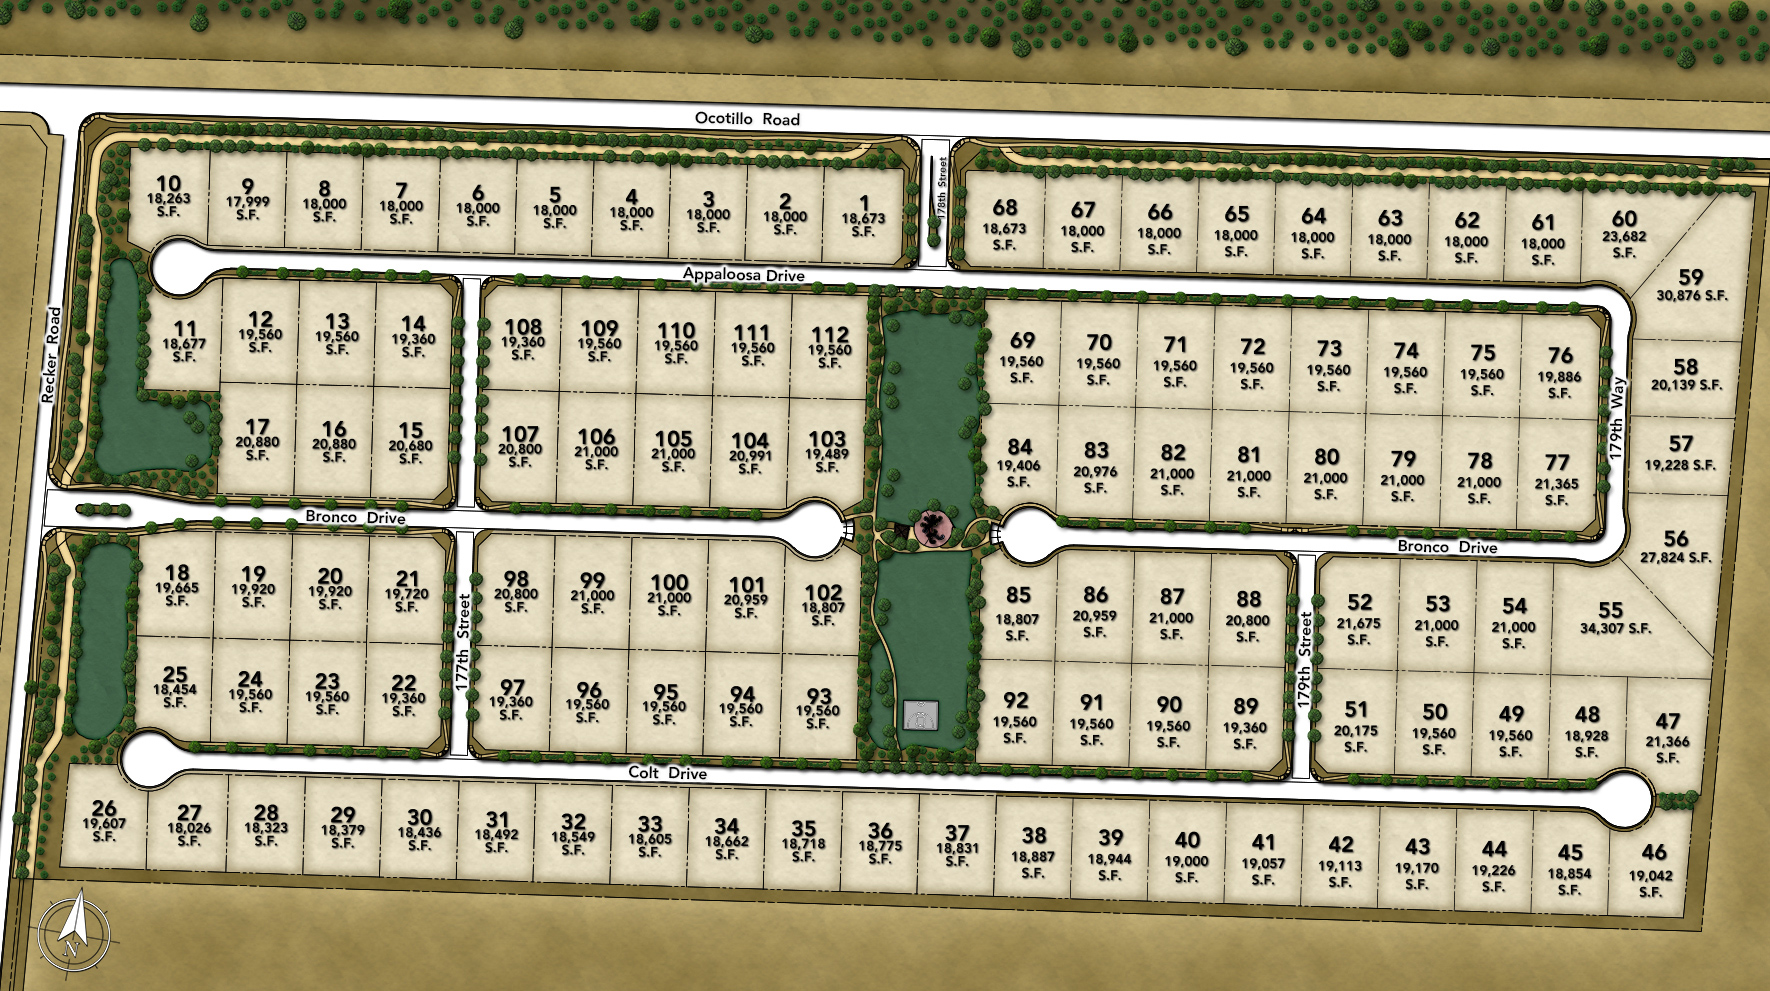 Dorada Estates Site Plan